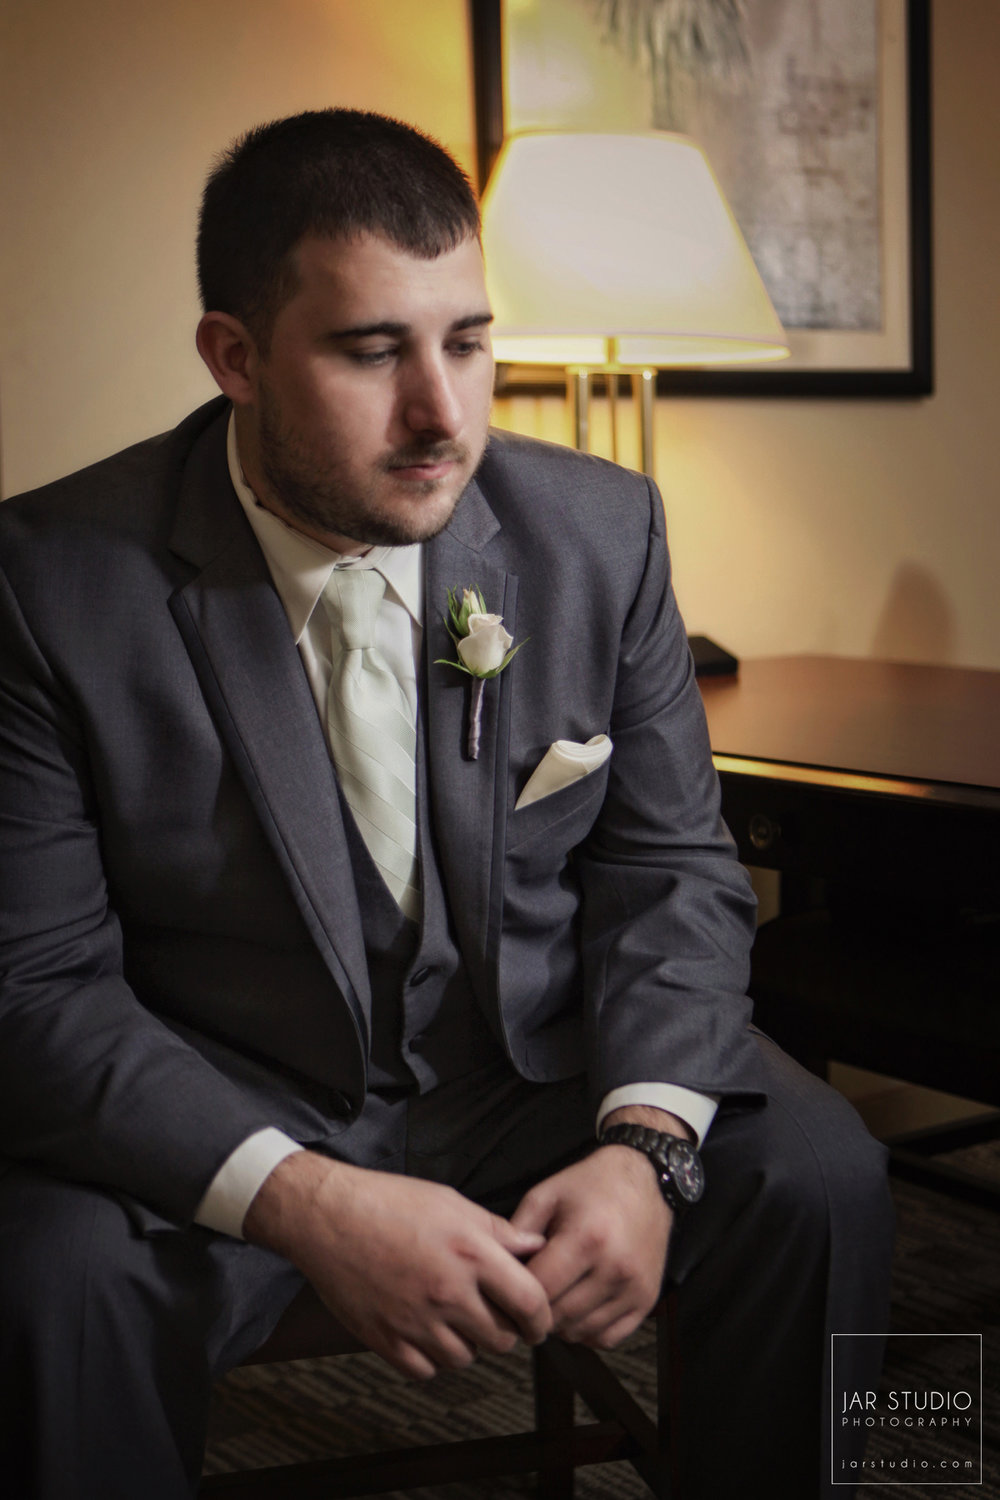 07-groom-jarstudio-portrait-photography-orlando.jpg